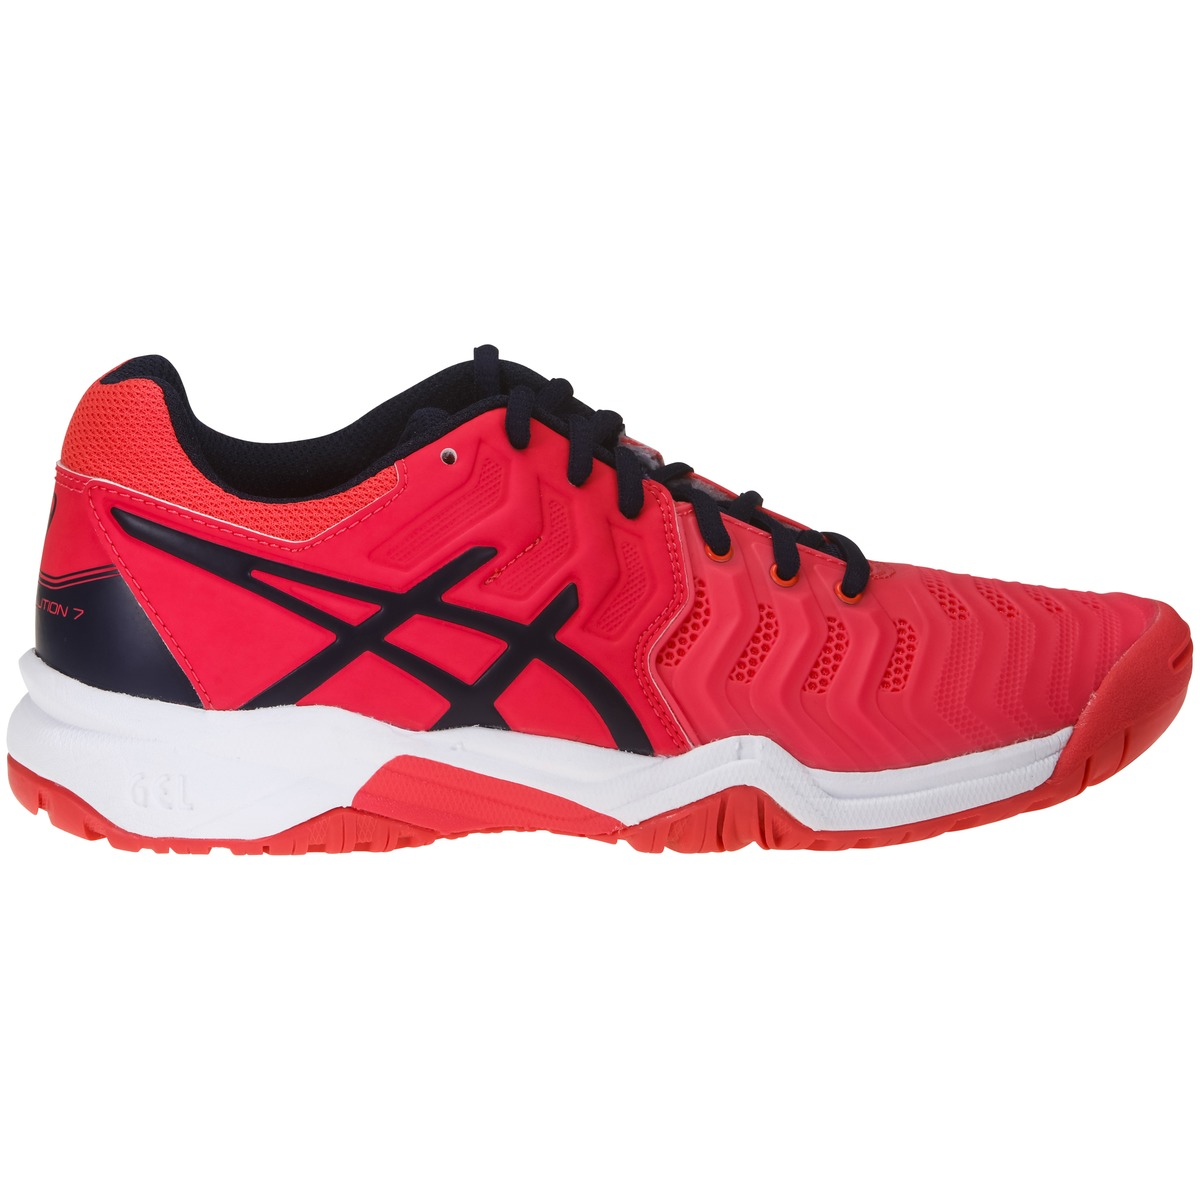 new style df66e cc36e röd asics gel resolution 7 gs tennissko junior tennisskor barn